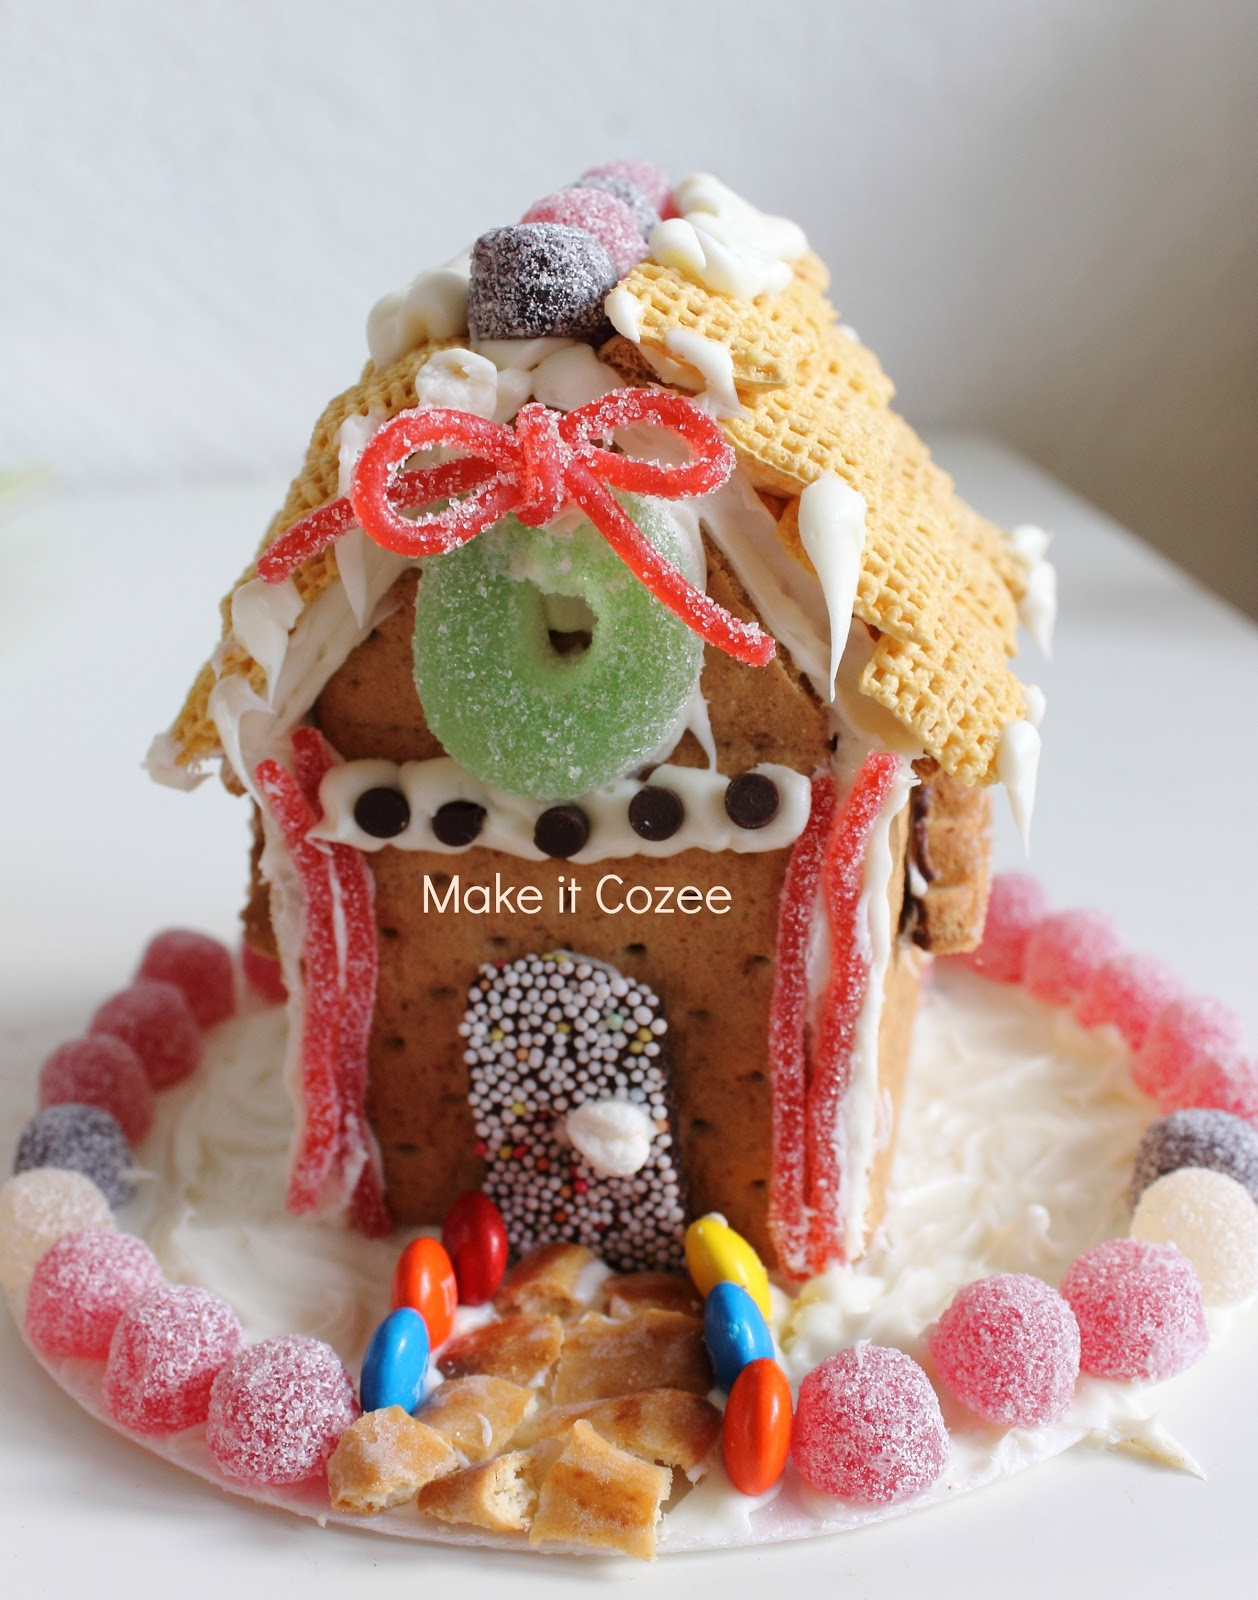 Make it Cozee: Graham Cracker Gingerbread House